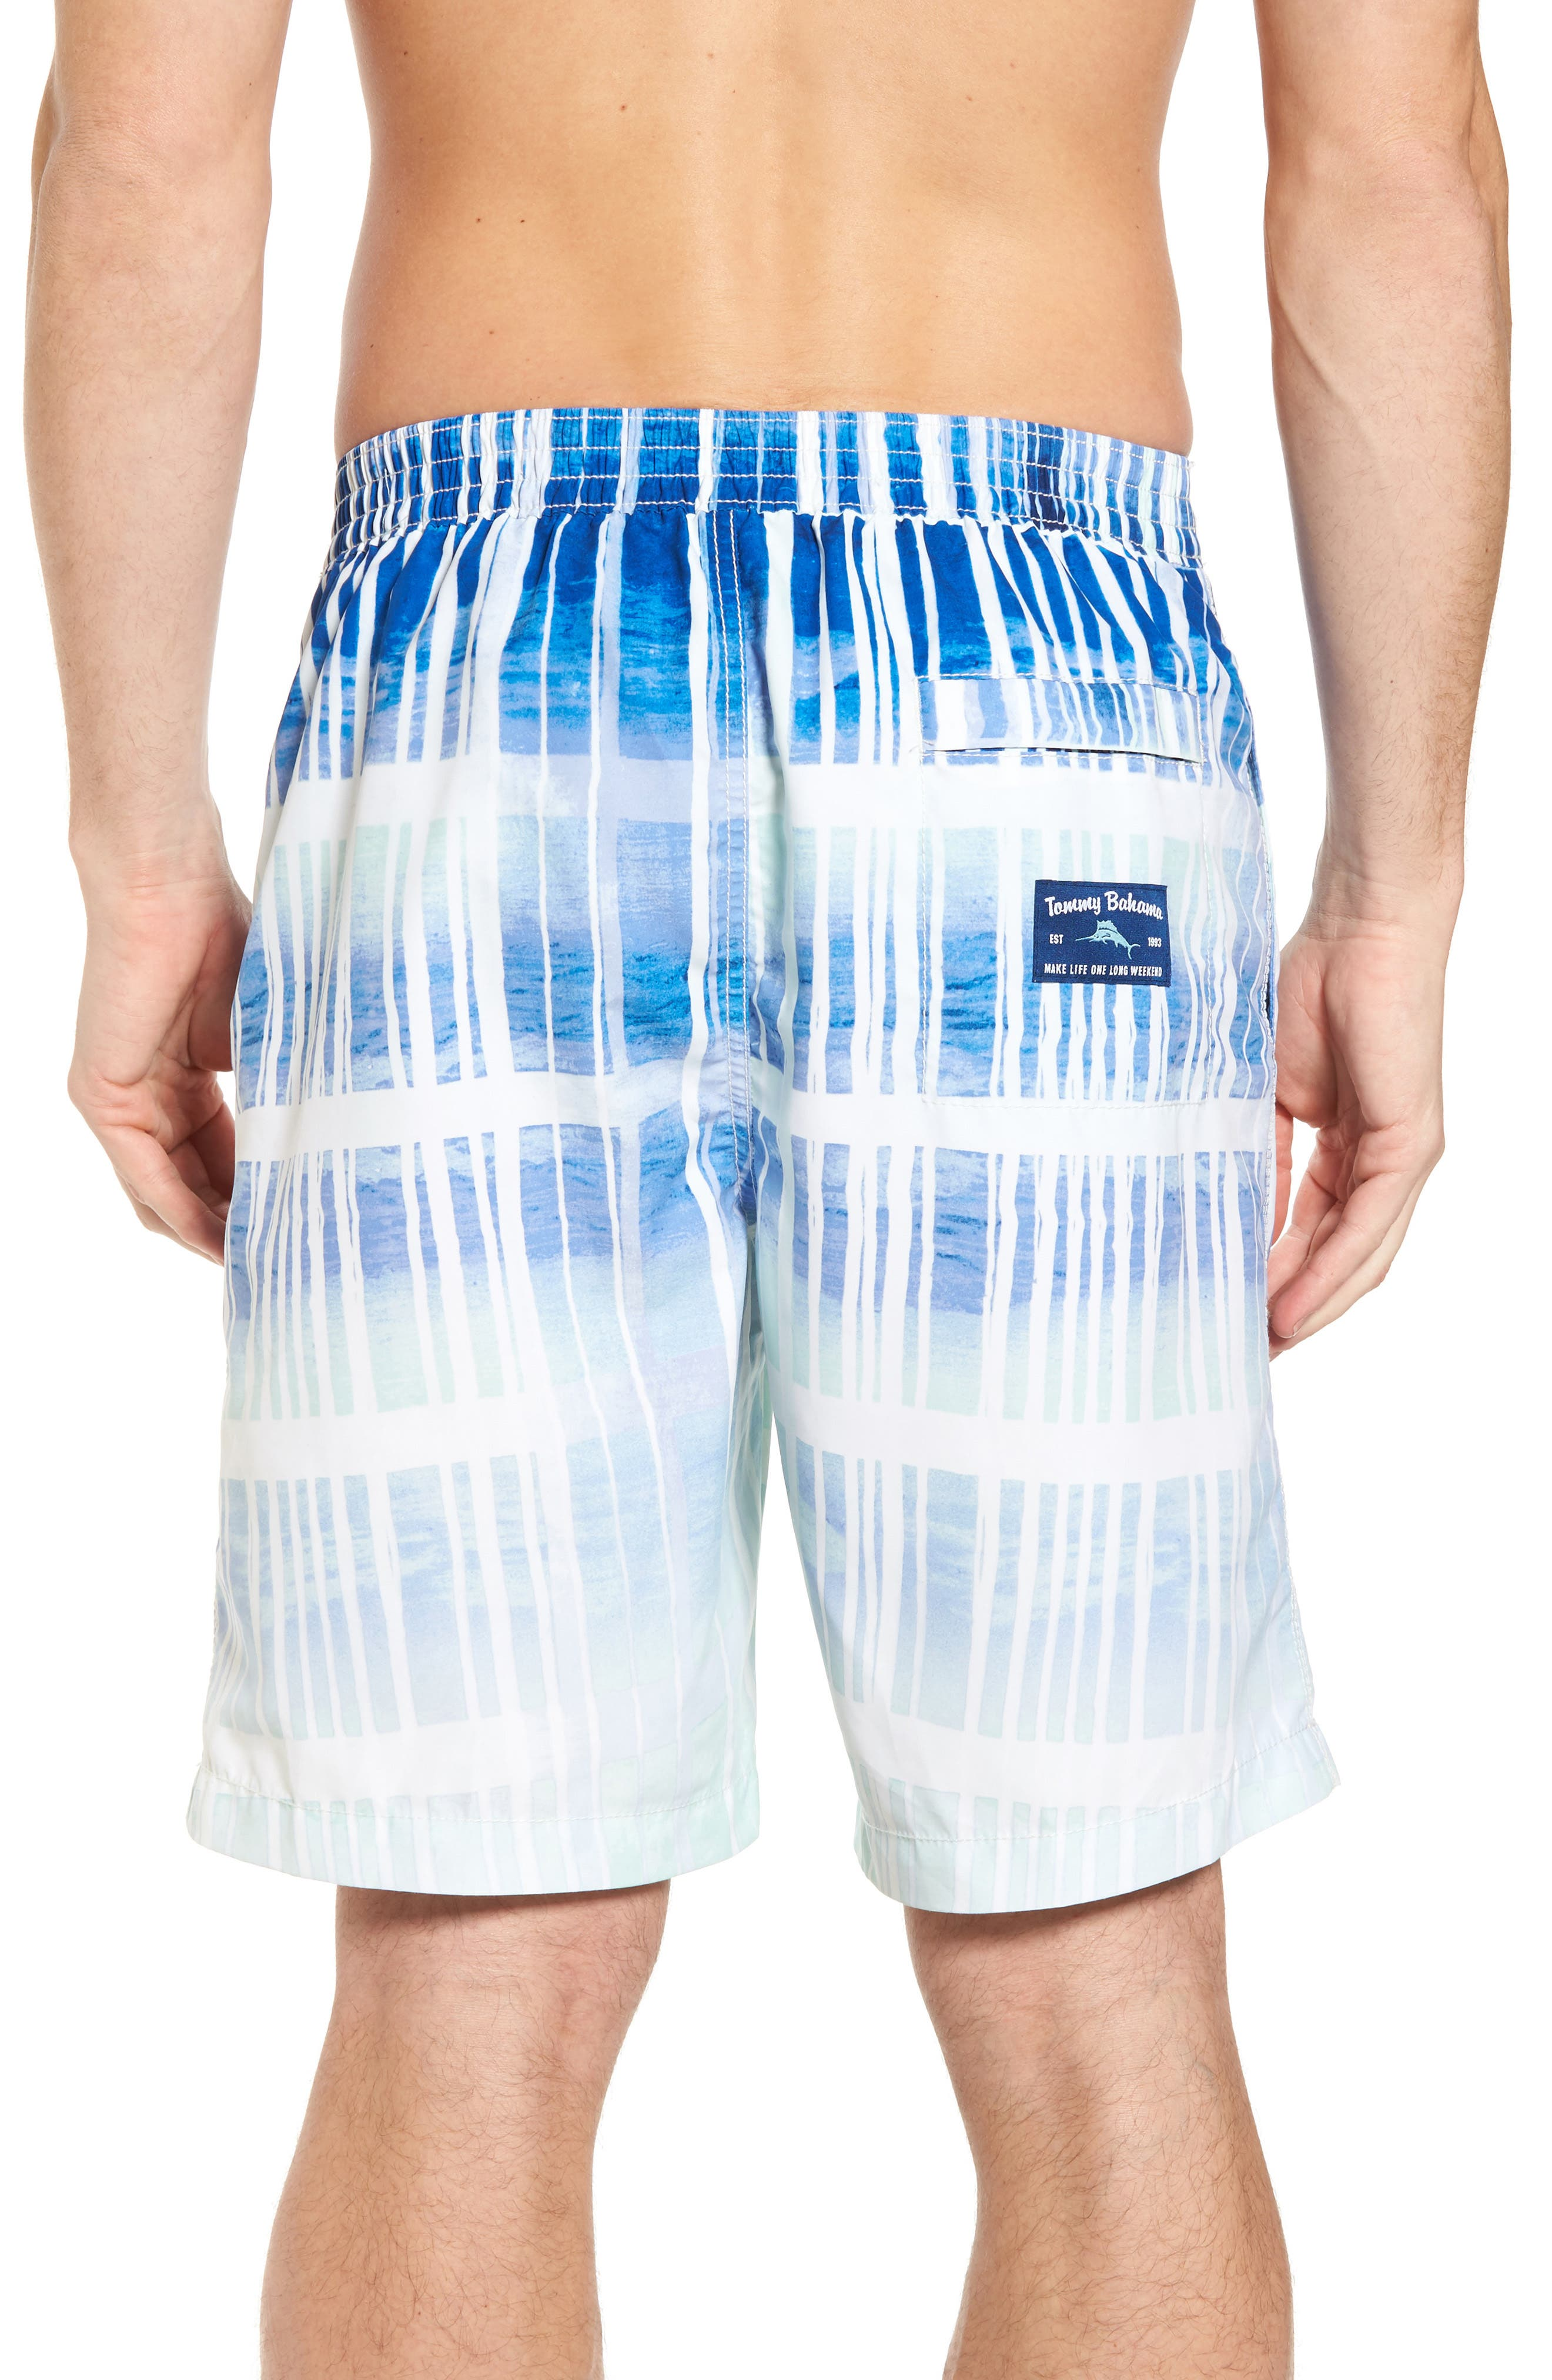 Baja Okeechobee Board Shorts,                             Alternate thumbnail 2, color,                             400